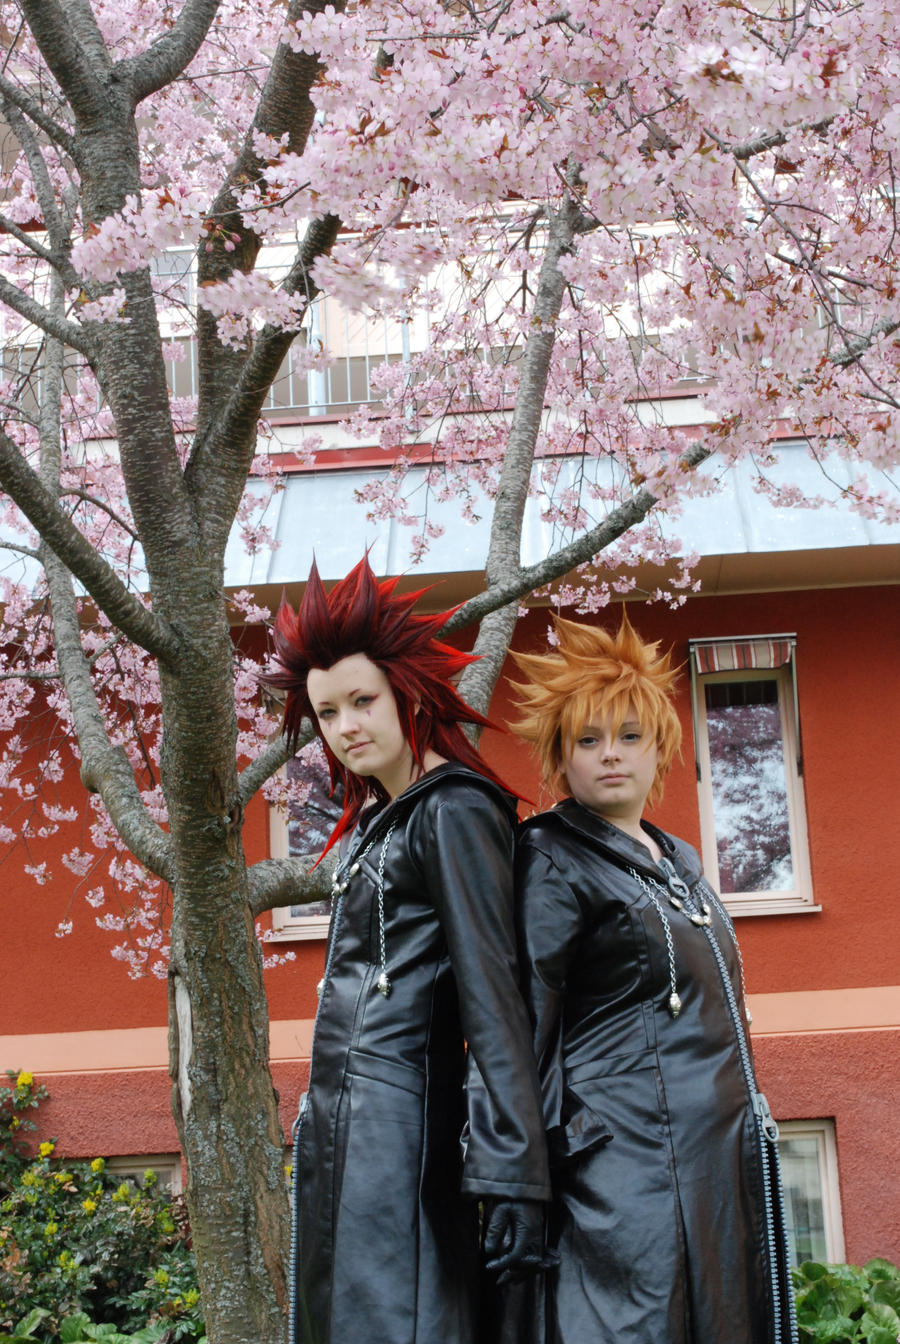 AkuRoku - Standing together. by Millahwood